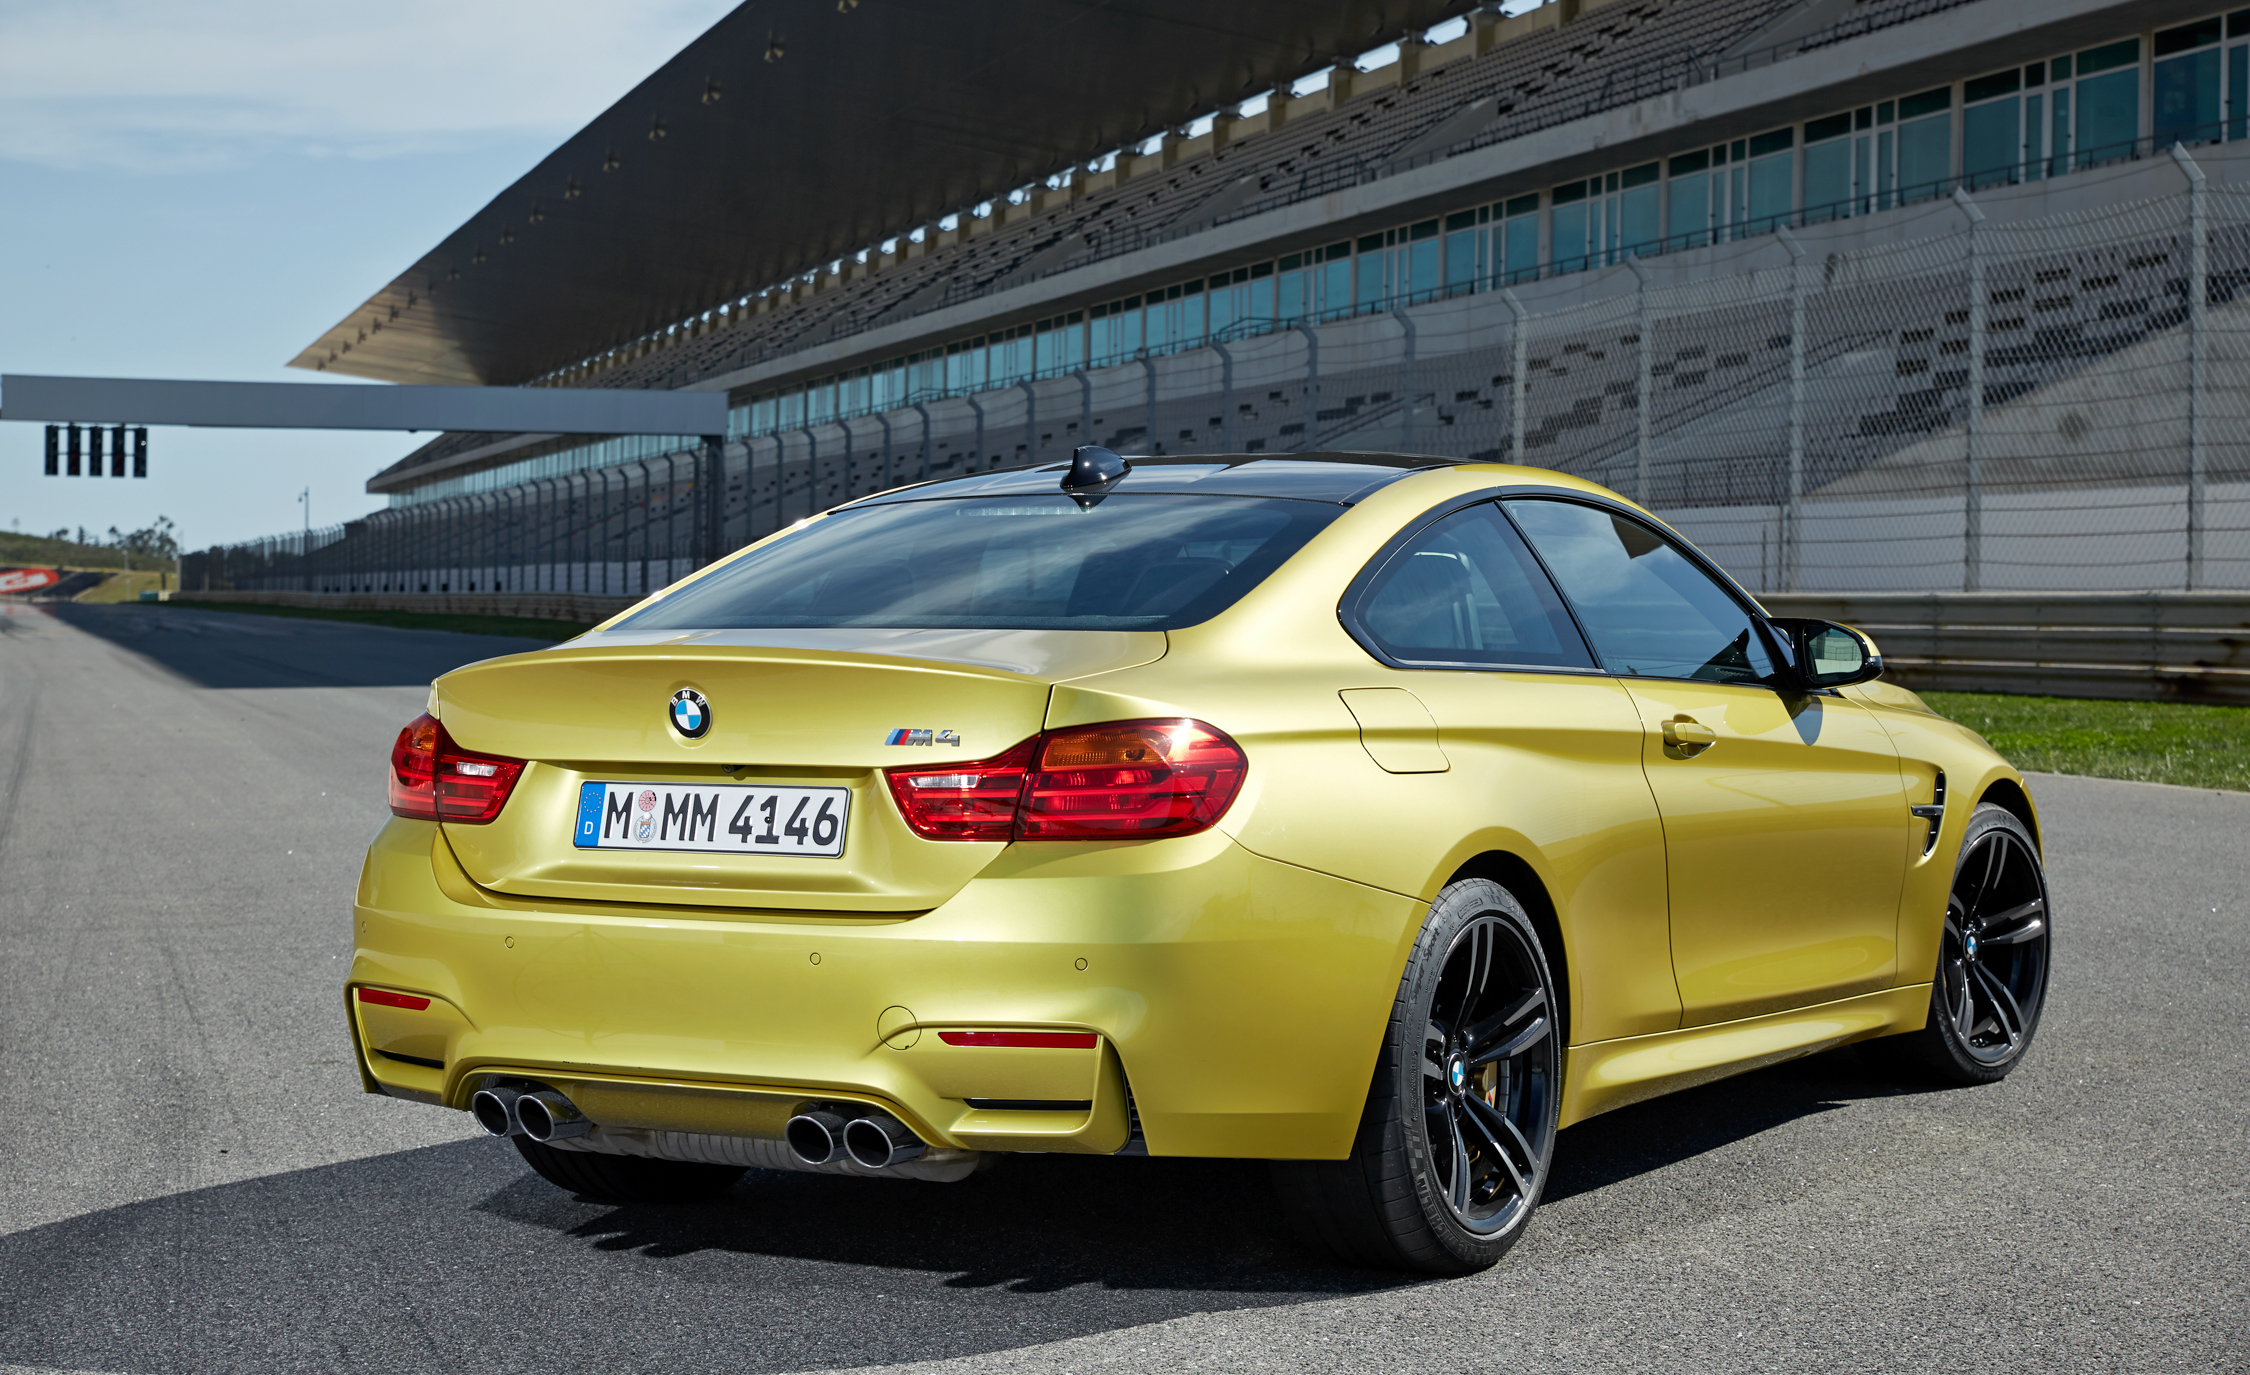 2015 BMW M4 Coupe Exterior Rear and Side